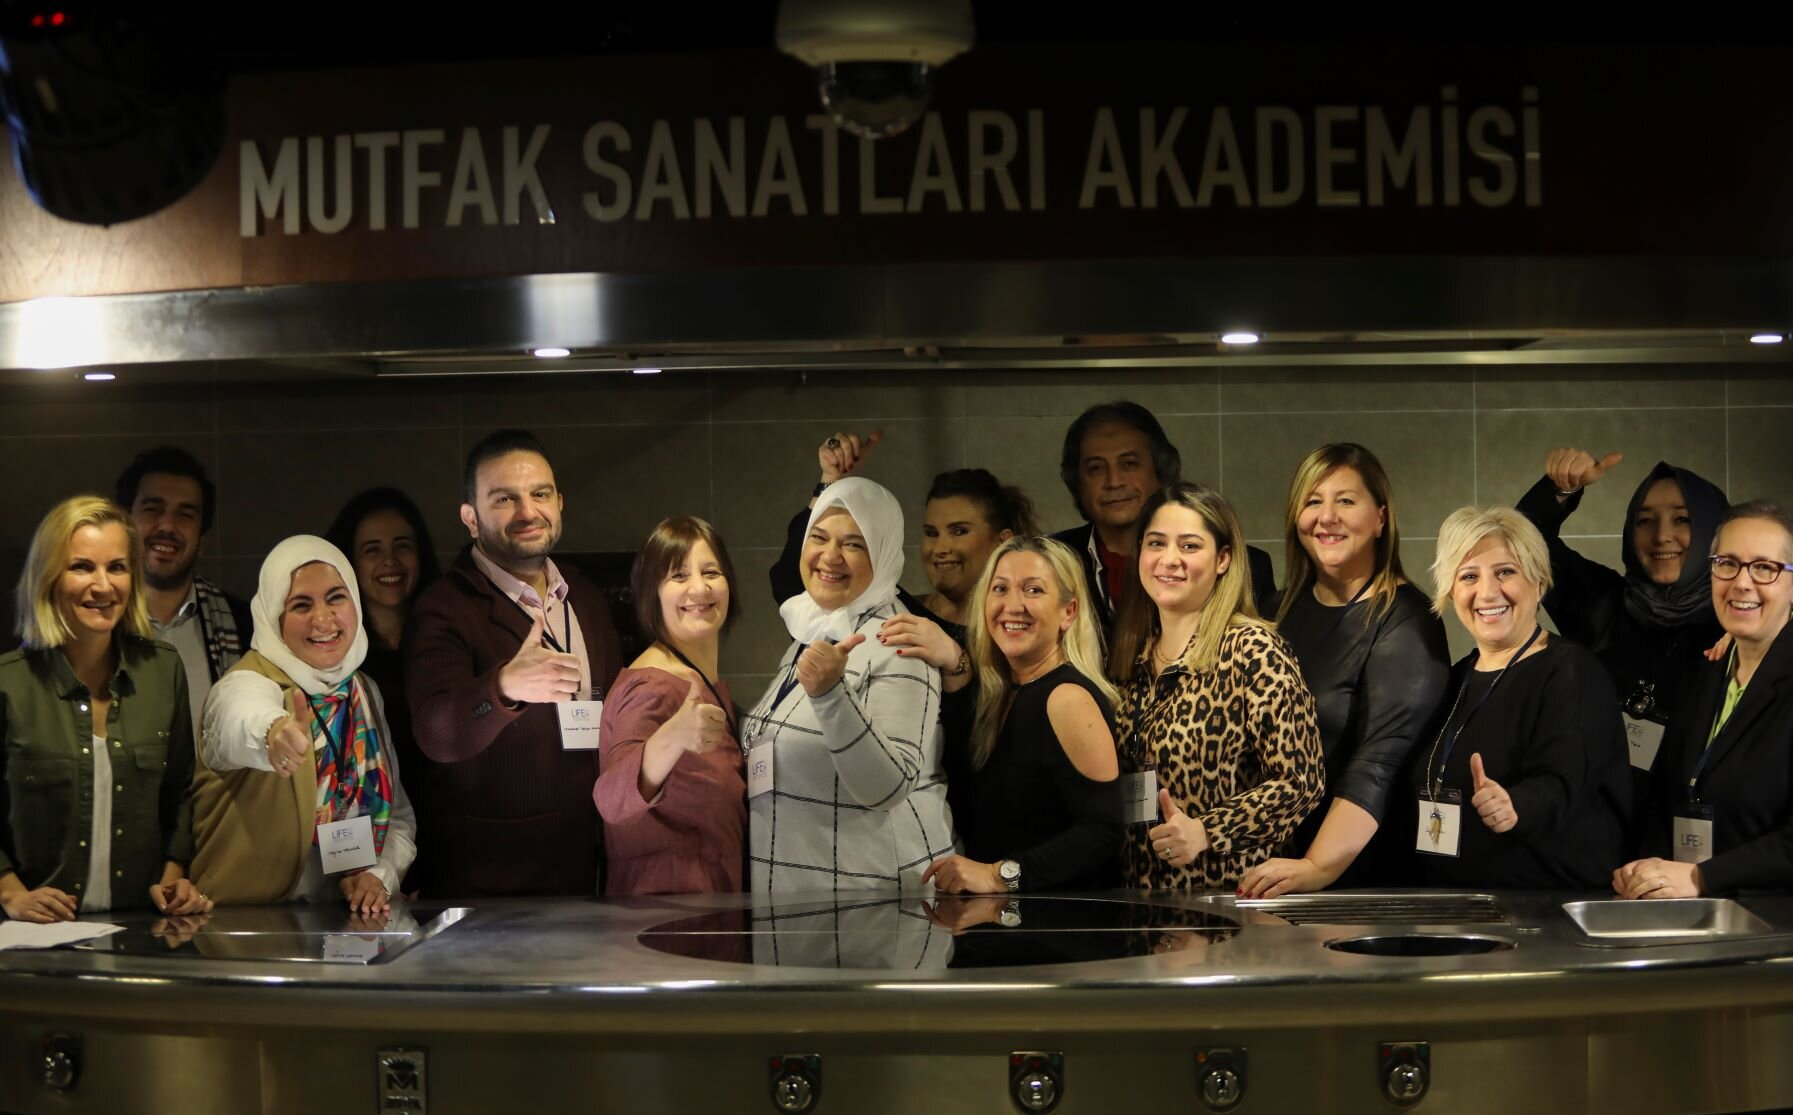 Contributing members celebrate their hard work at the cookbook launch event at MSA Istanbul